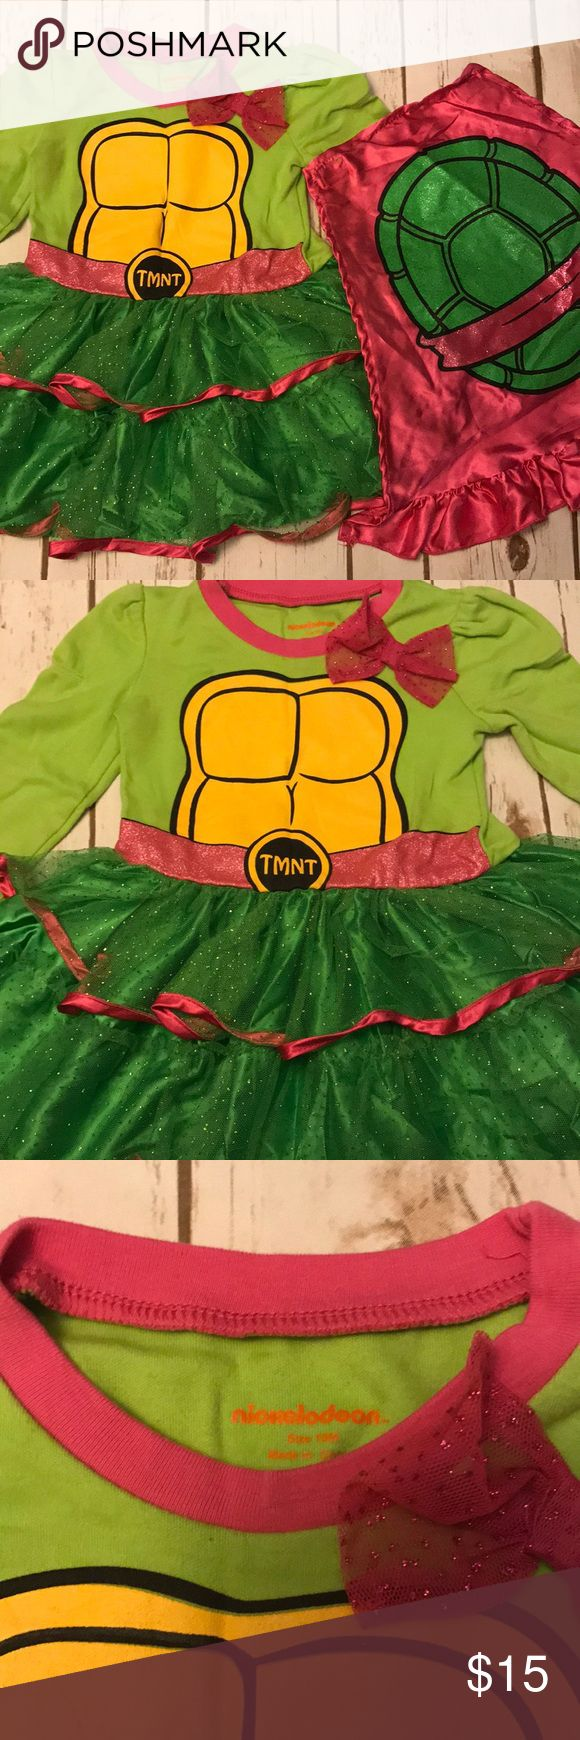 Toddler Girl Nickelodeon Ninja Turtle Tutu Dress GUC- Dress itself is in EUC, the detachable cape is in GUC because there are a couple of pulls at the upper right hand corner of cape- see the last pic. Overall this is just such a super cute dress for your little girl. It's Nickelodeon brand sized 18 months. Top half of dress is a tee shirt material and bottom half is layered tulle. Cape can be attached or removed easily with Velcro tabs that are part of the dress. Smoke free home Nickelodeon…